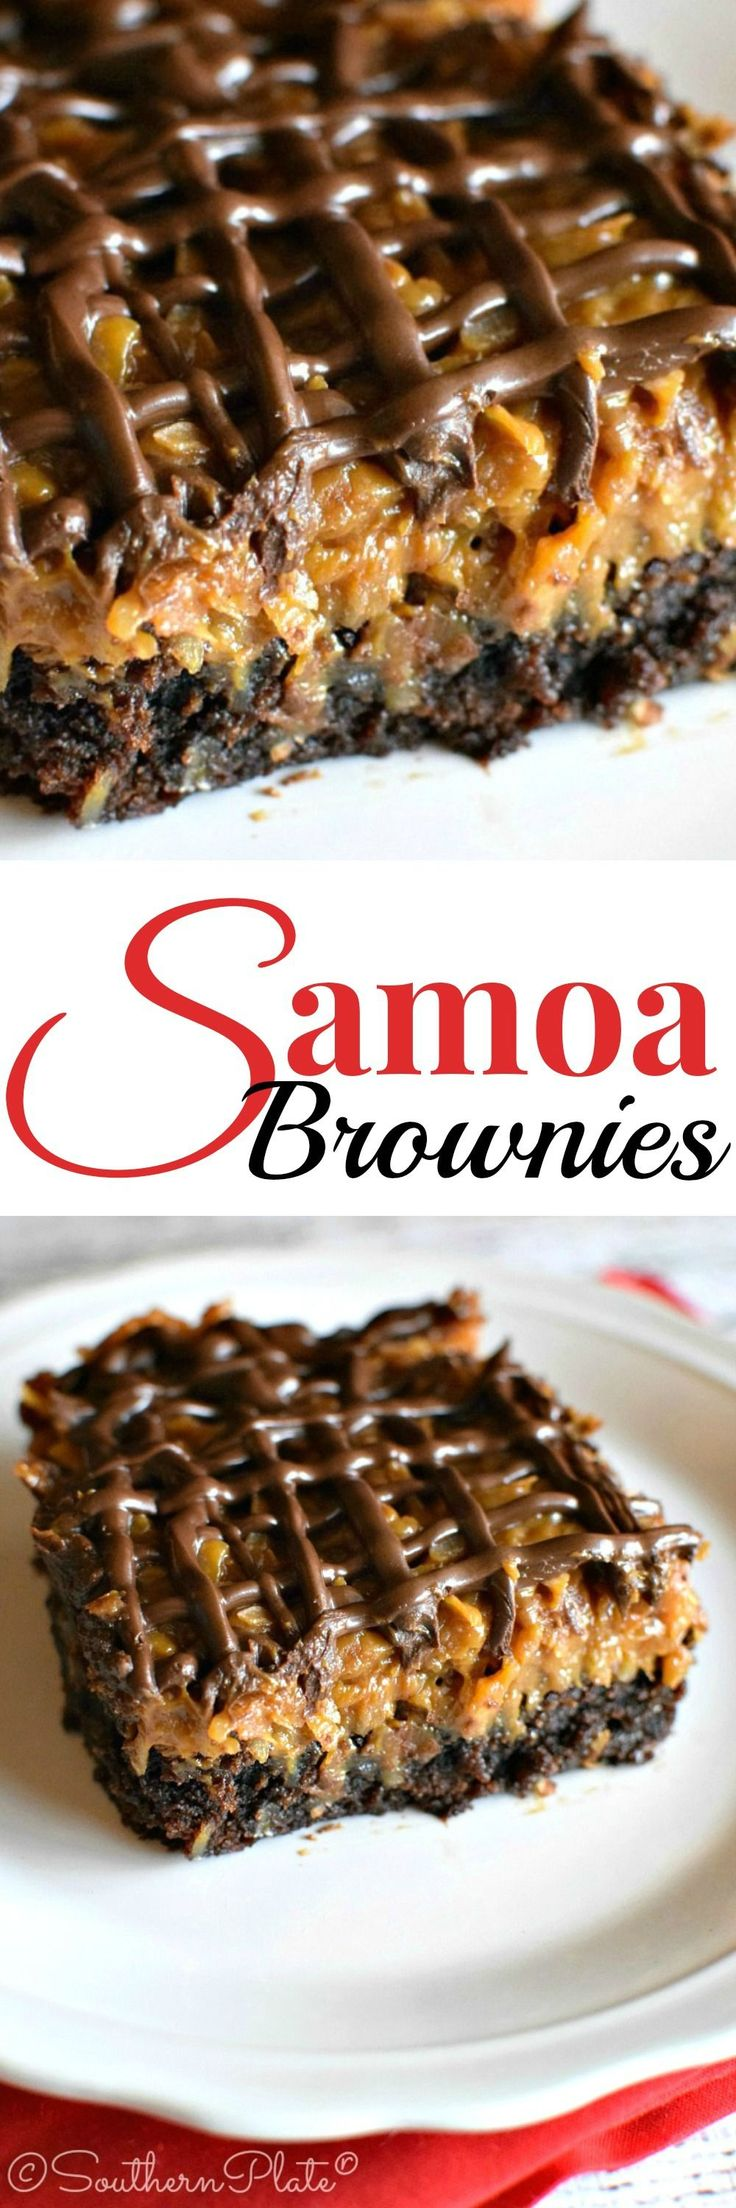 Samoa Brownies - So good! Very quick and easy, too. I made the brownies from scratch (my mom's Hershey's cocoa recipe, but using Bourneville cocoa powder), and added chopped pecans to both the brownies and the coconut-caramel topping. Very rich, lovely with coffee or espresso :)